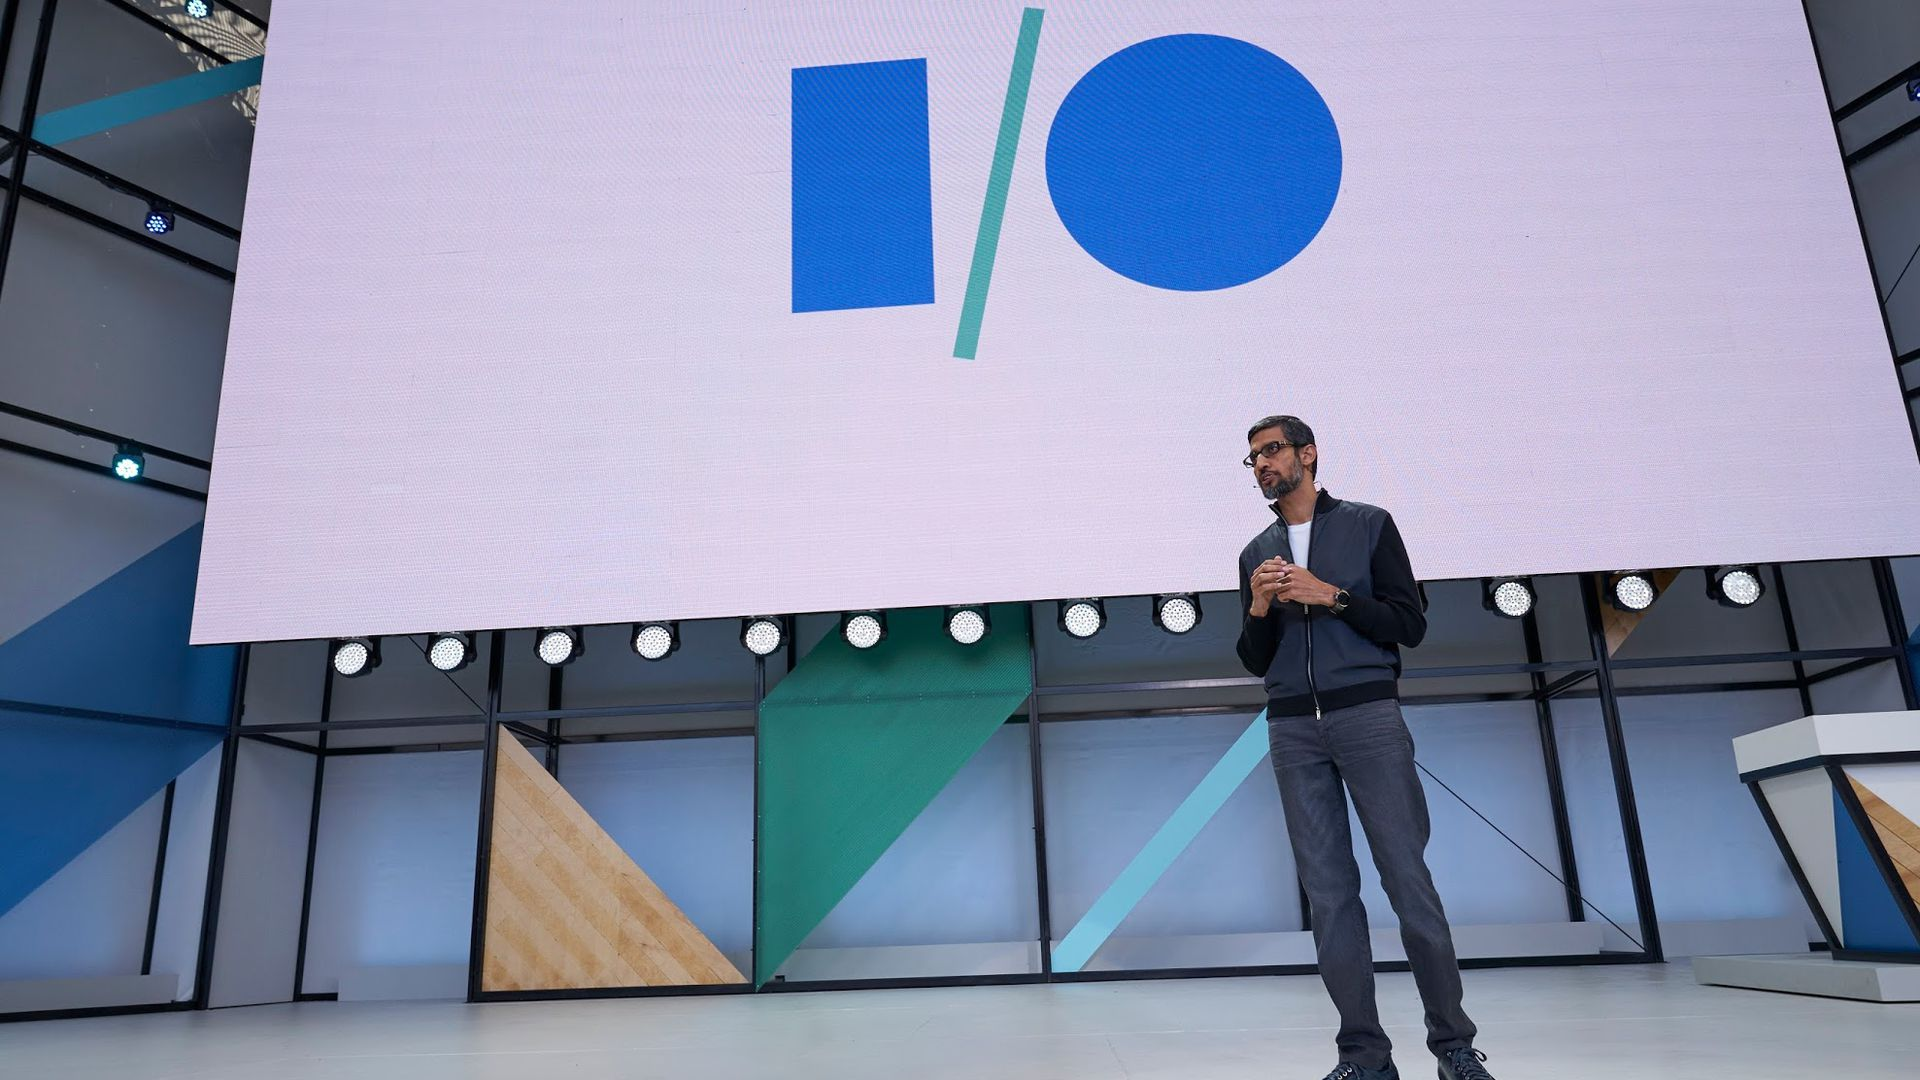 Google CEO Sundar Pichai, speaking at Google I/O 2017